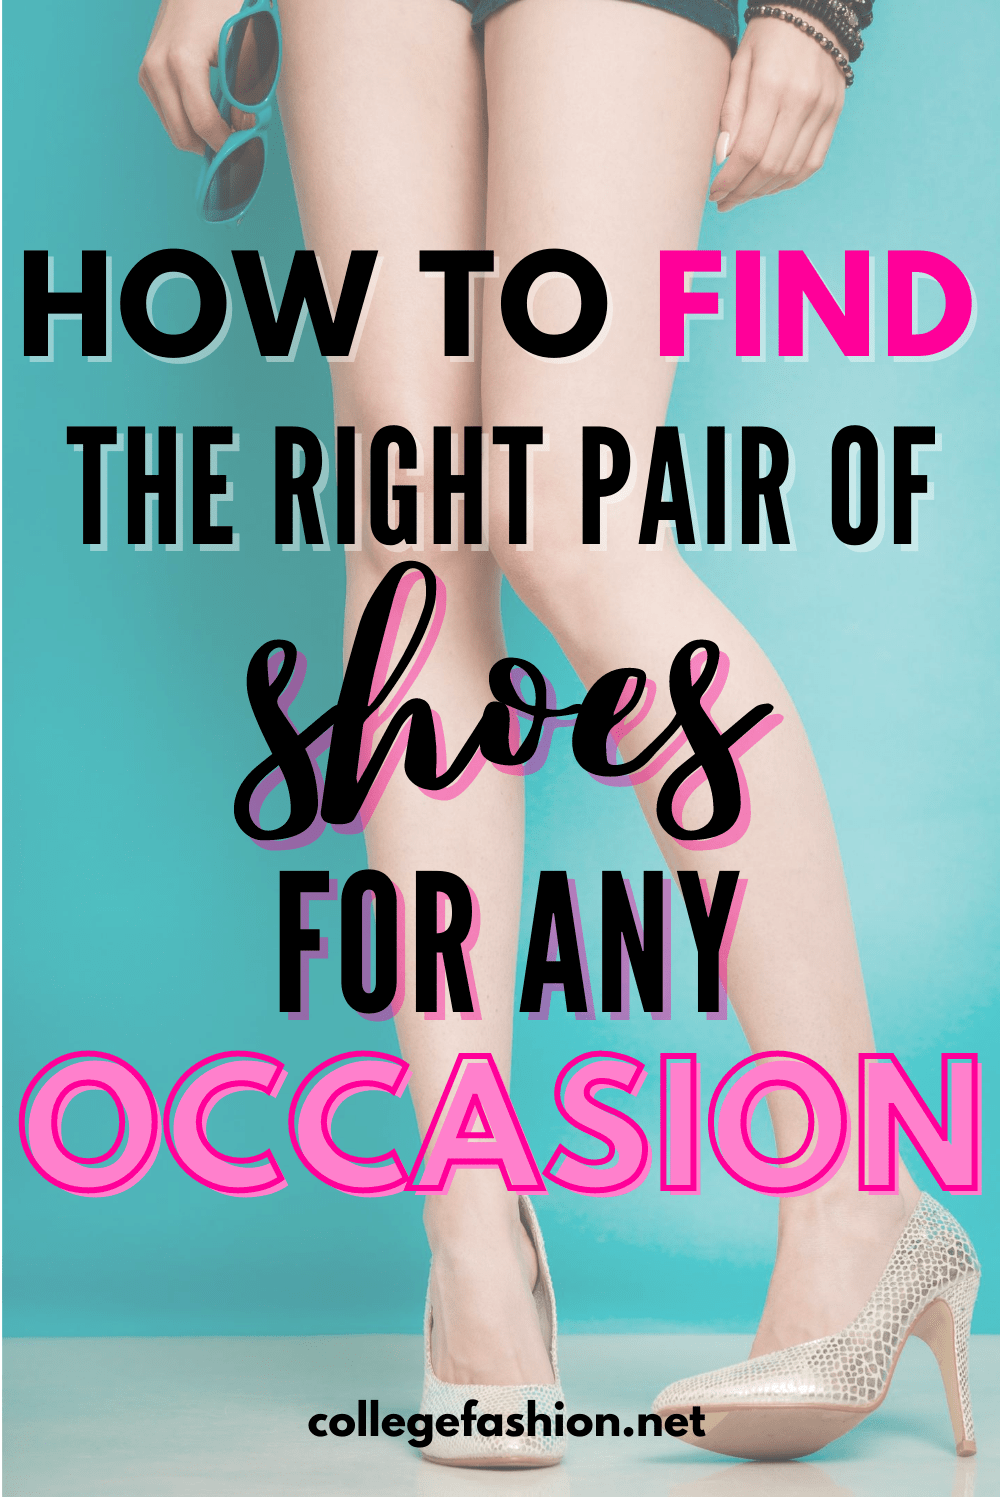 Shoes for Different Occasions header image